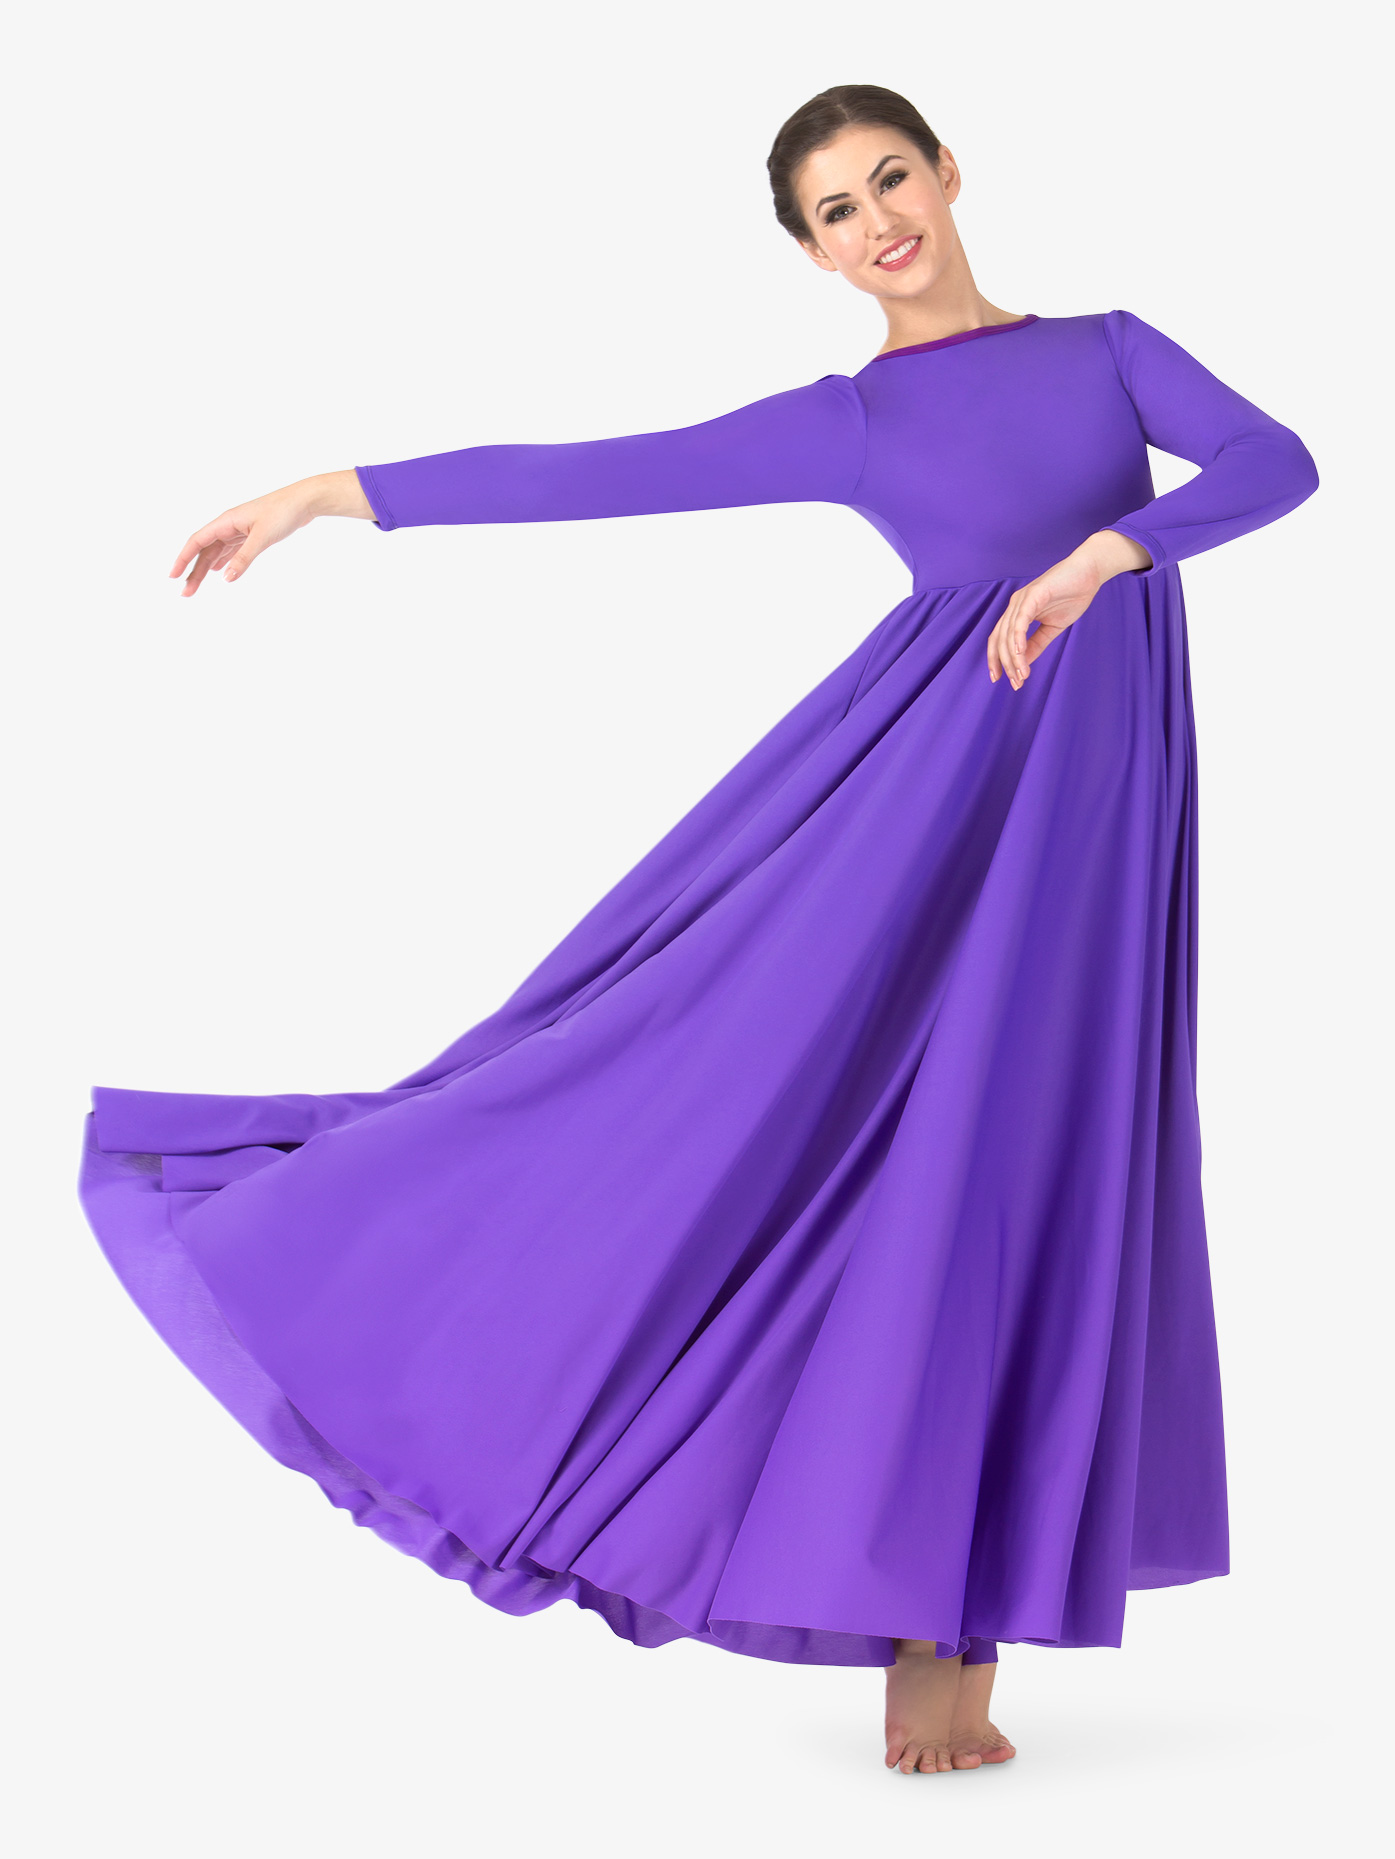 Liturgical And Praise Dance Wear At Danceweardeals